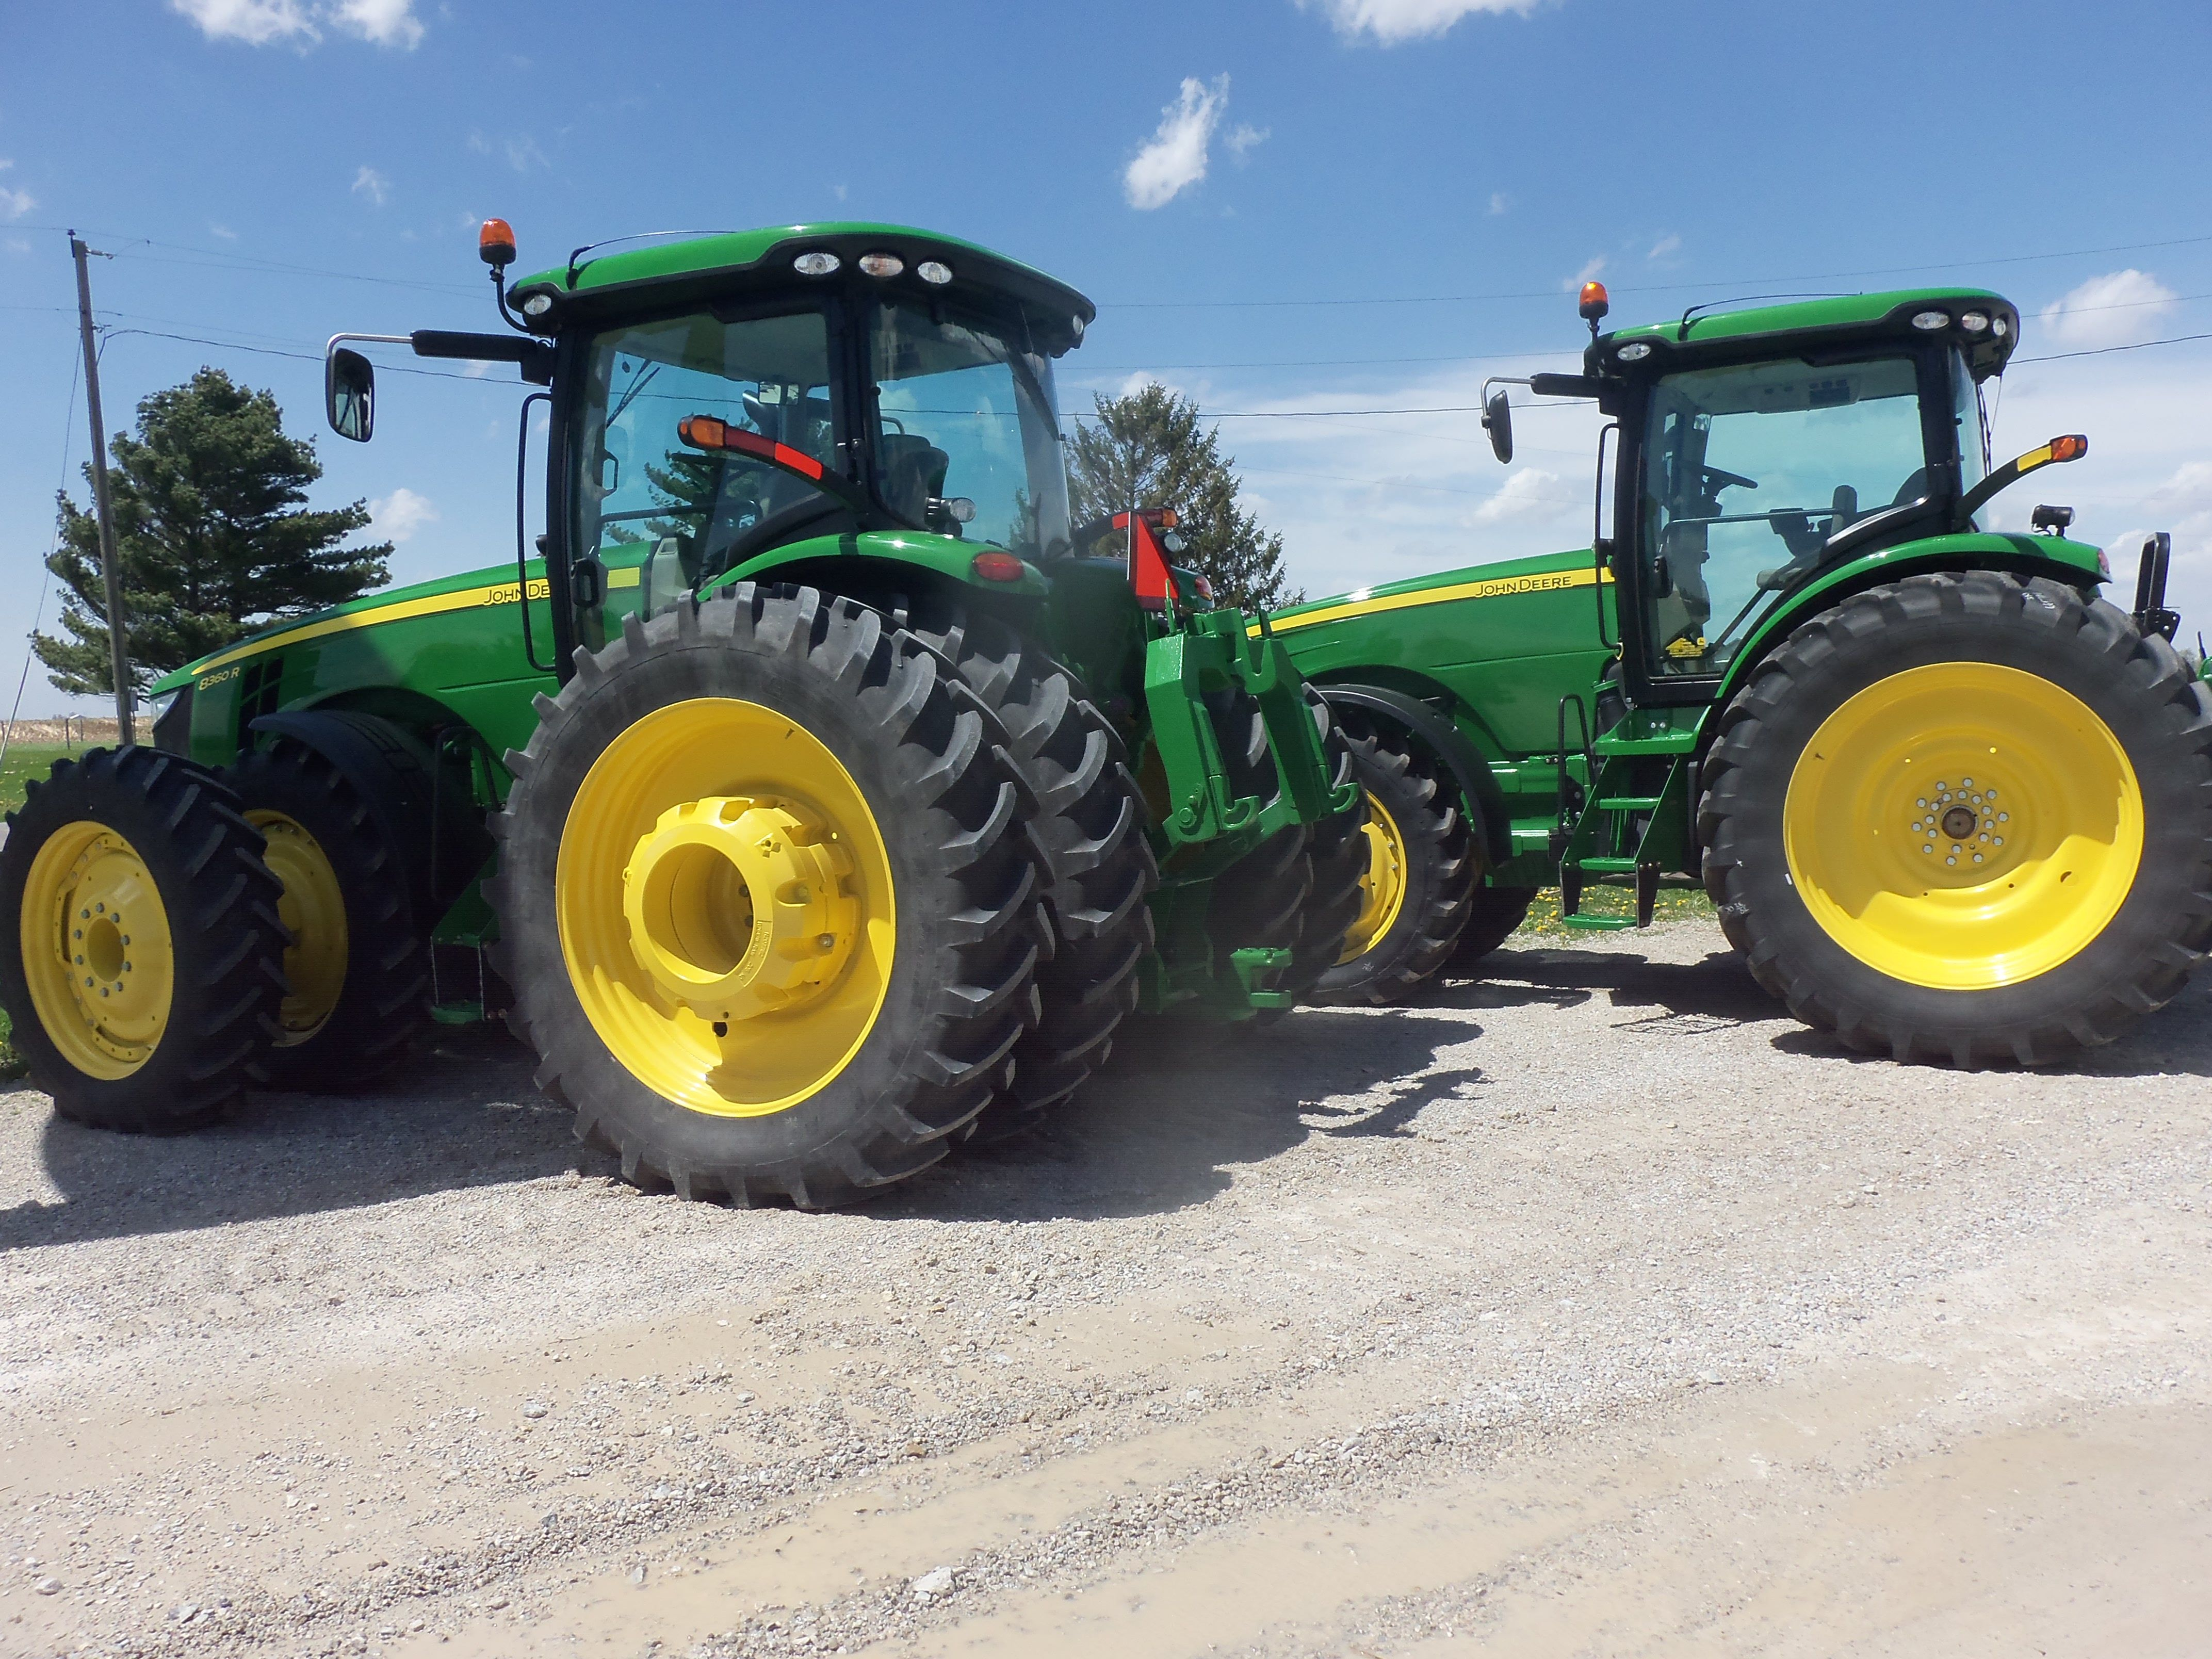 Opposite ends of the John Deere 8R Series tractors.192 hp John Deere 8235R on right & 321 hp 8360R on left.The 8235R has got the same hp as the 4850 from 30 years ago.The engine hp as the 8560 of 25 years ago